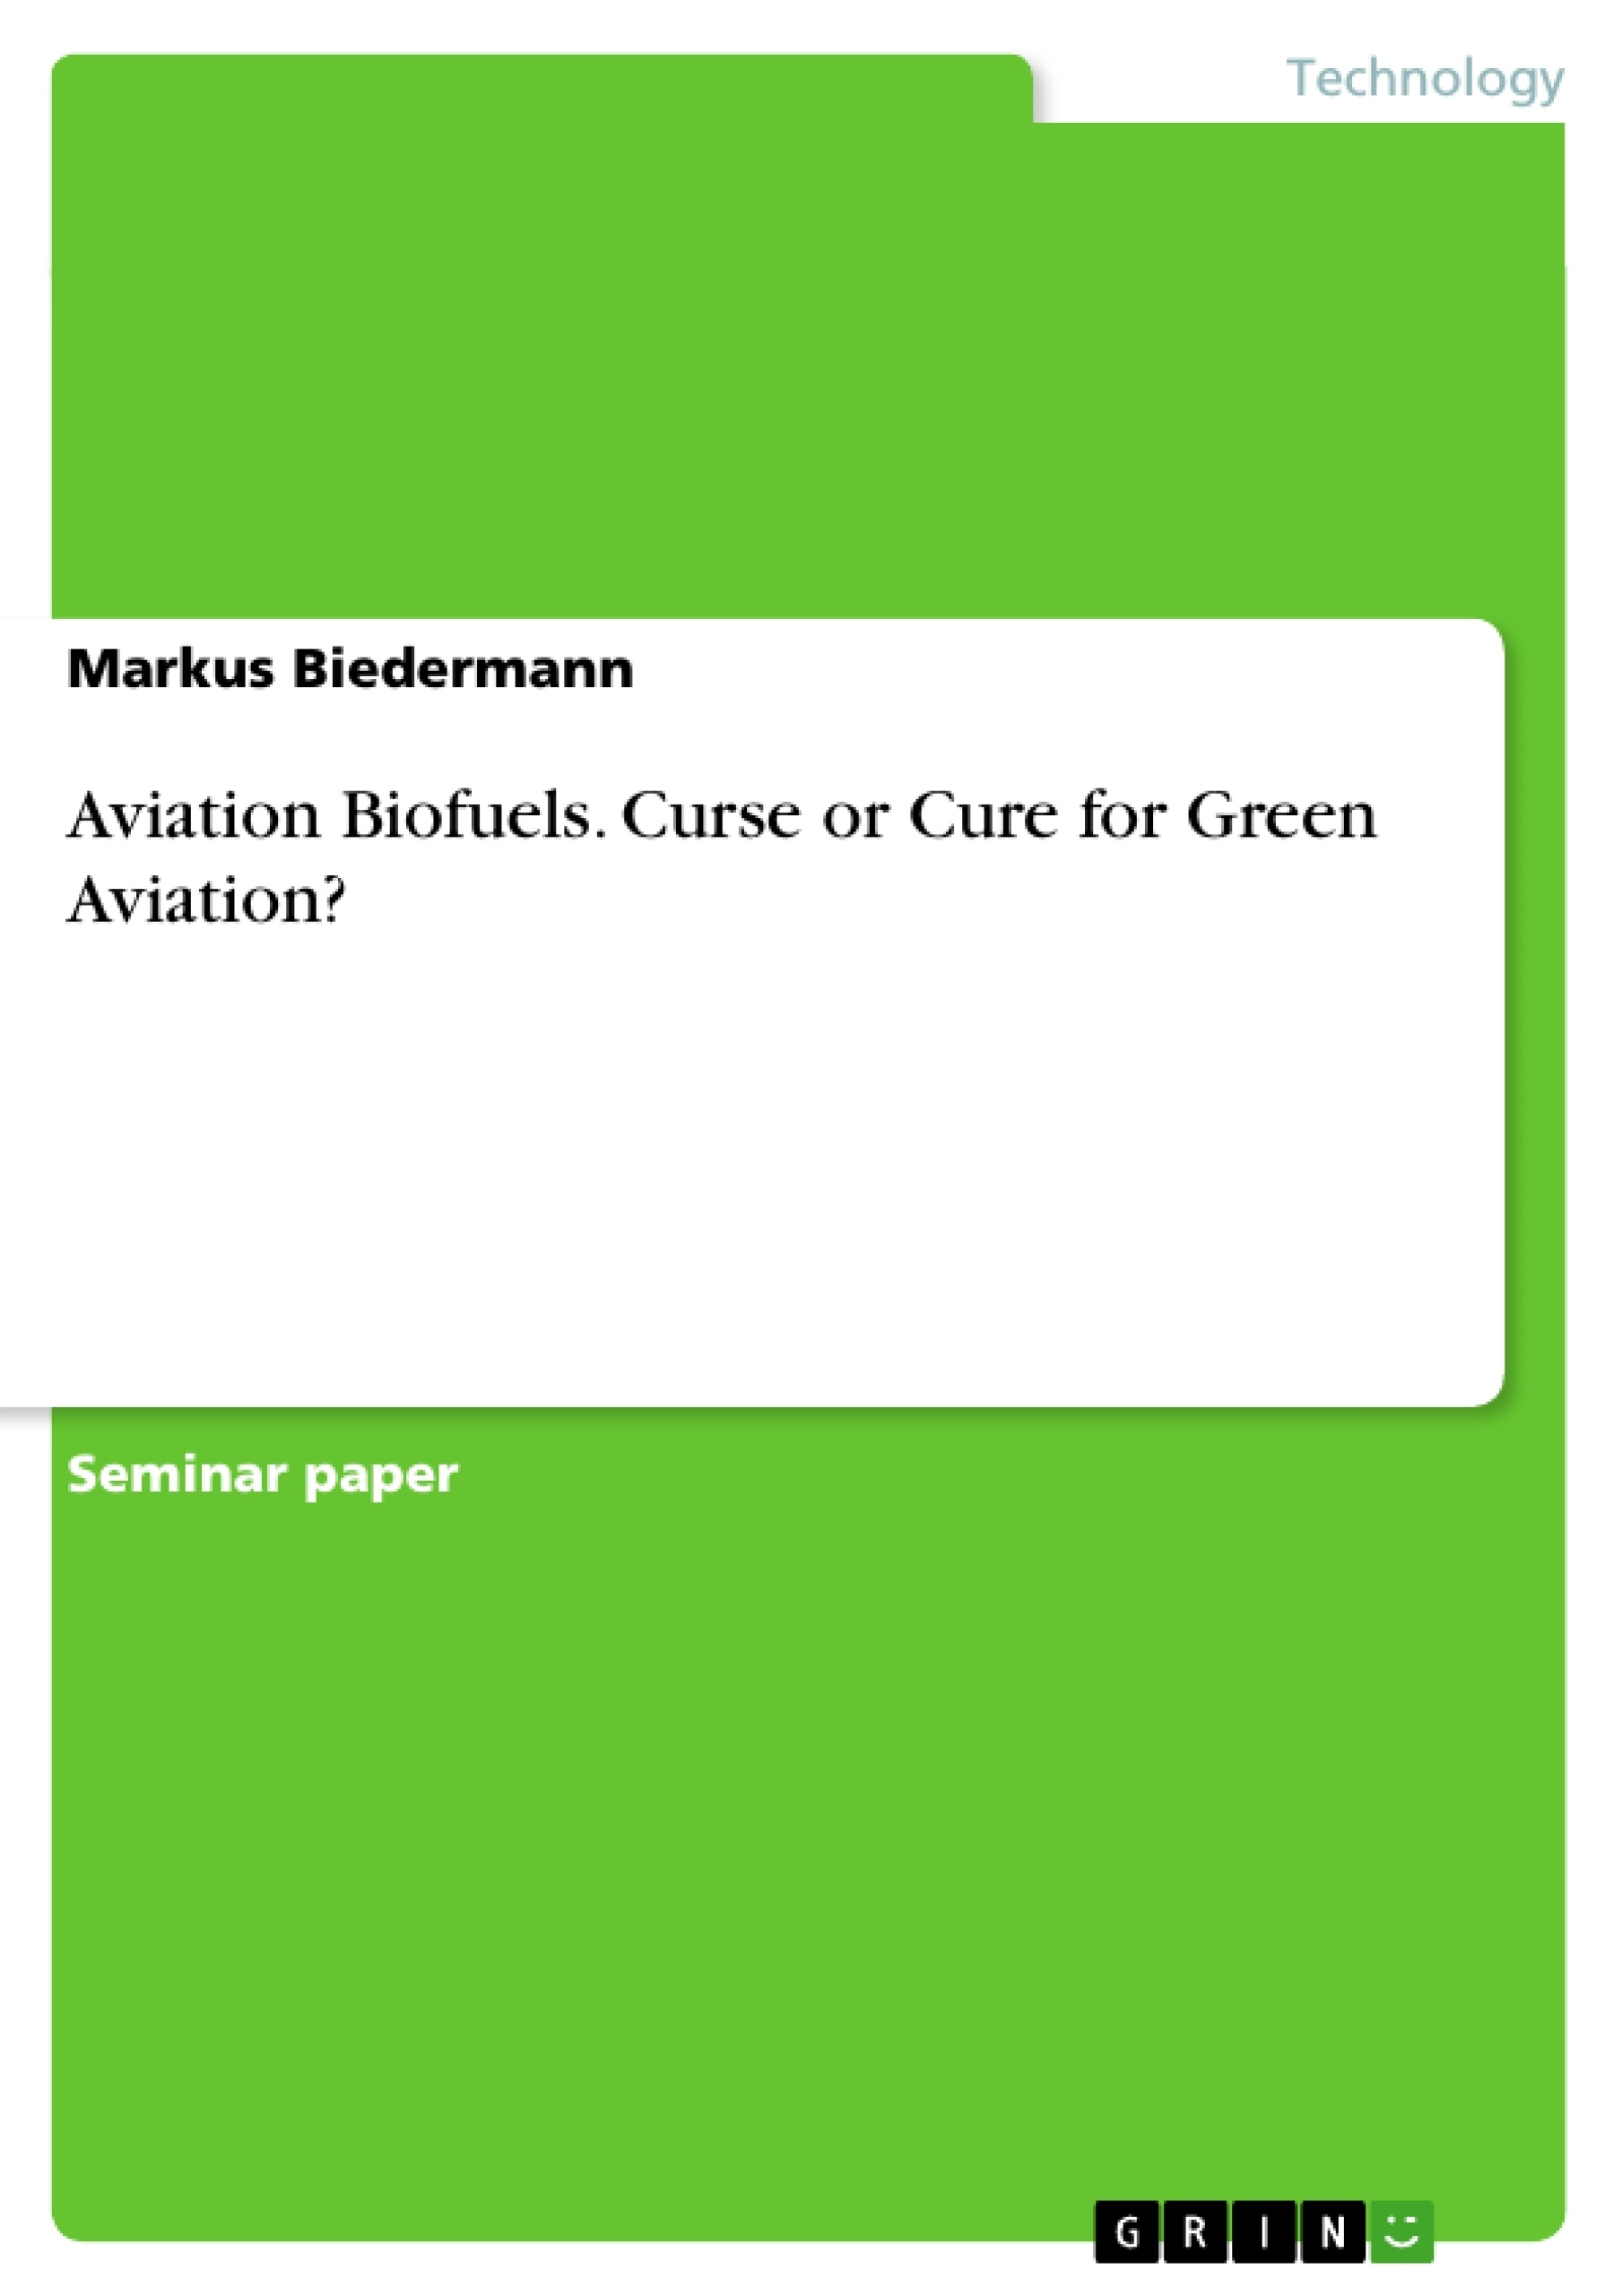 Title: Aviation Biofuels. Curse or Cure for Green Aviation?